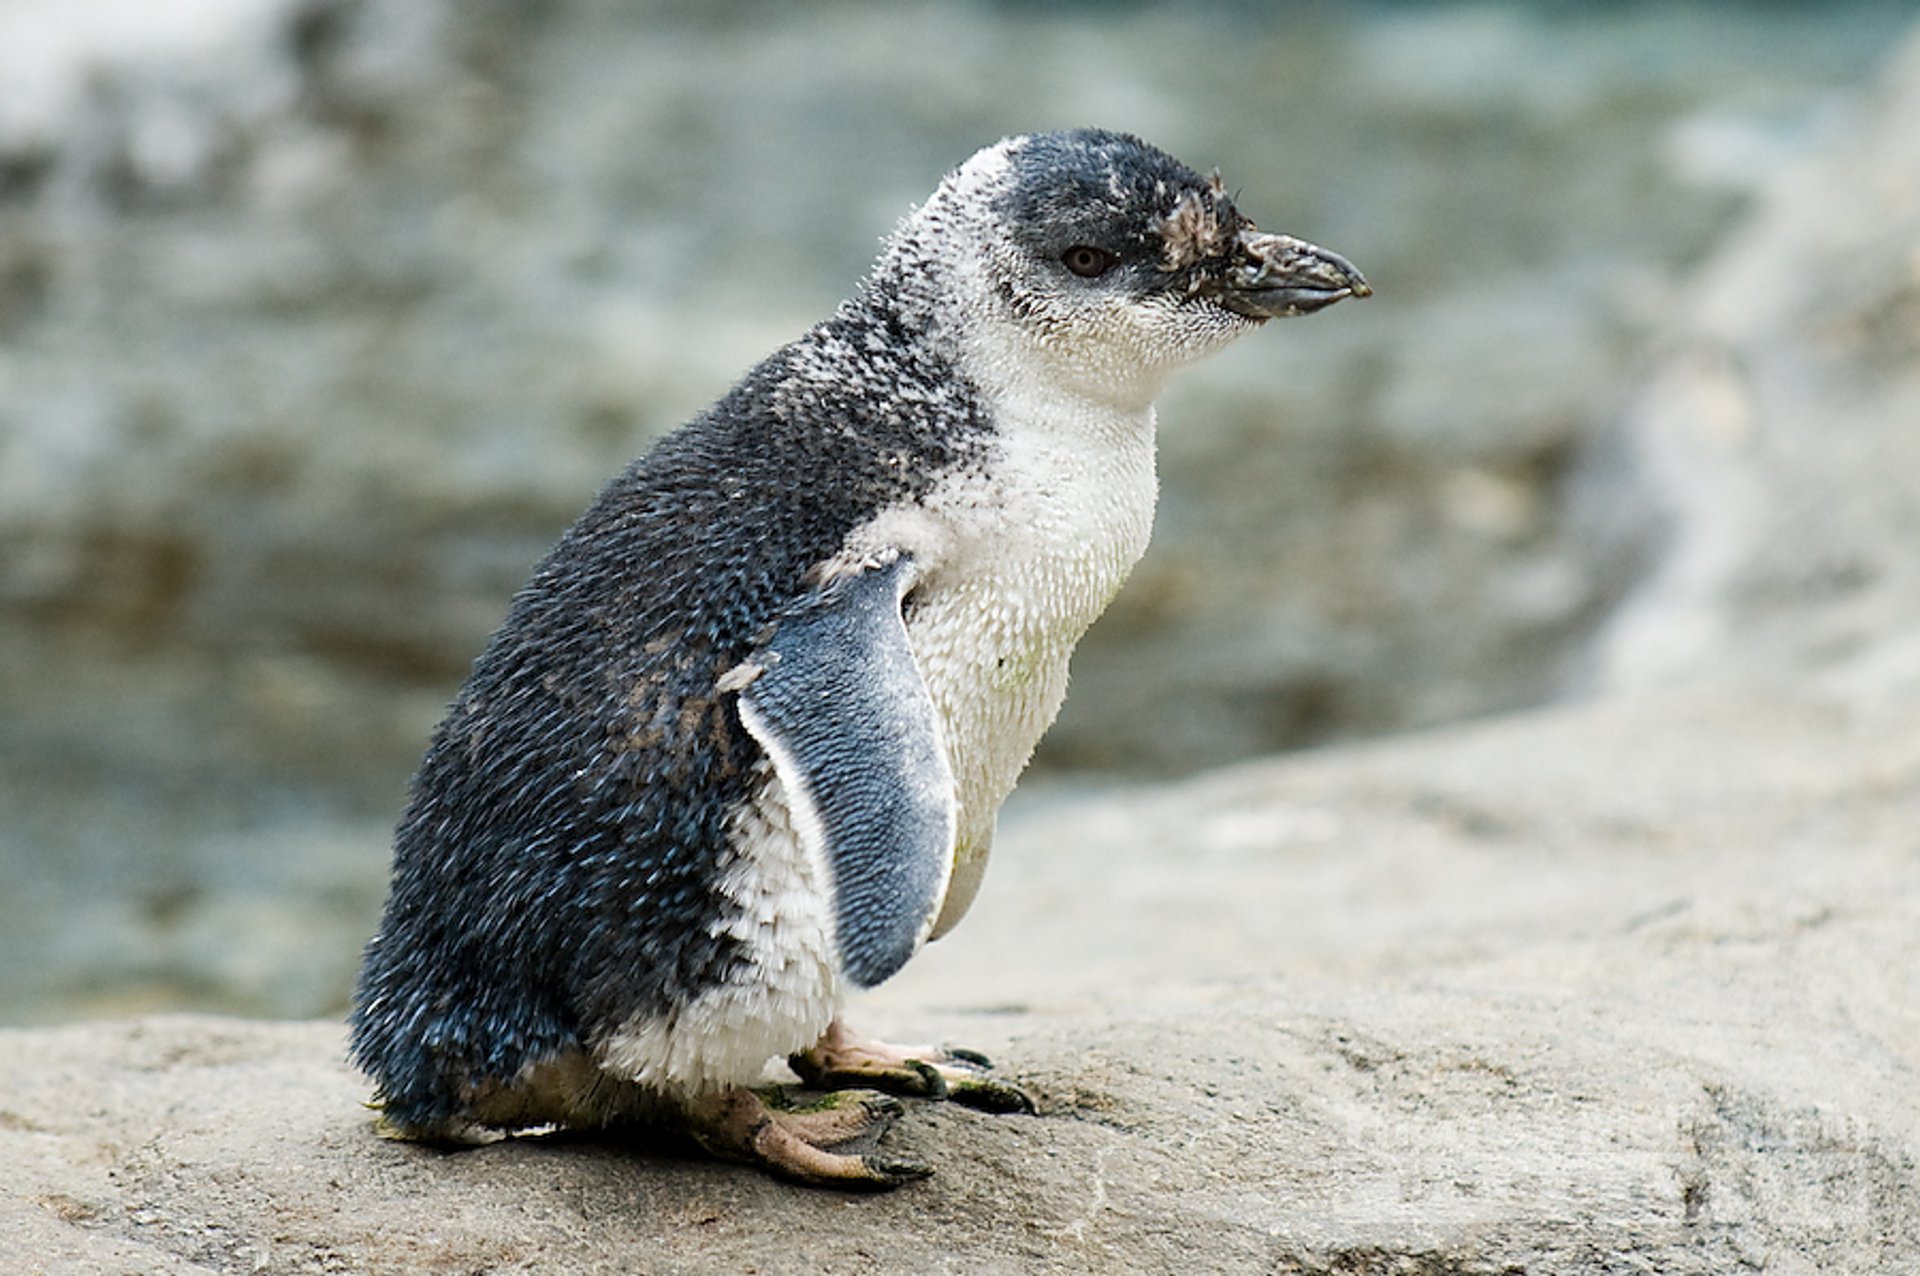 Kororā (Little Penguin) Breeding Season in New Zealand 2020 - Best Time